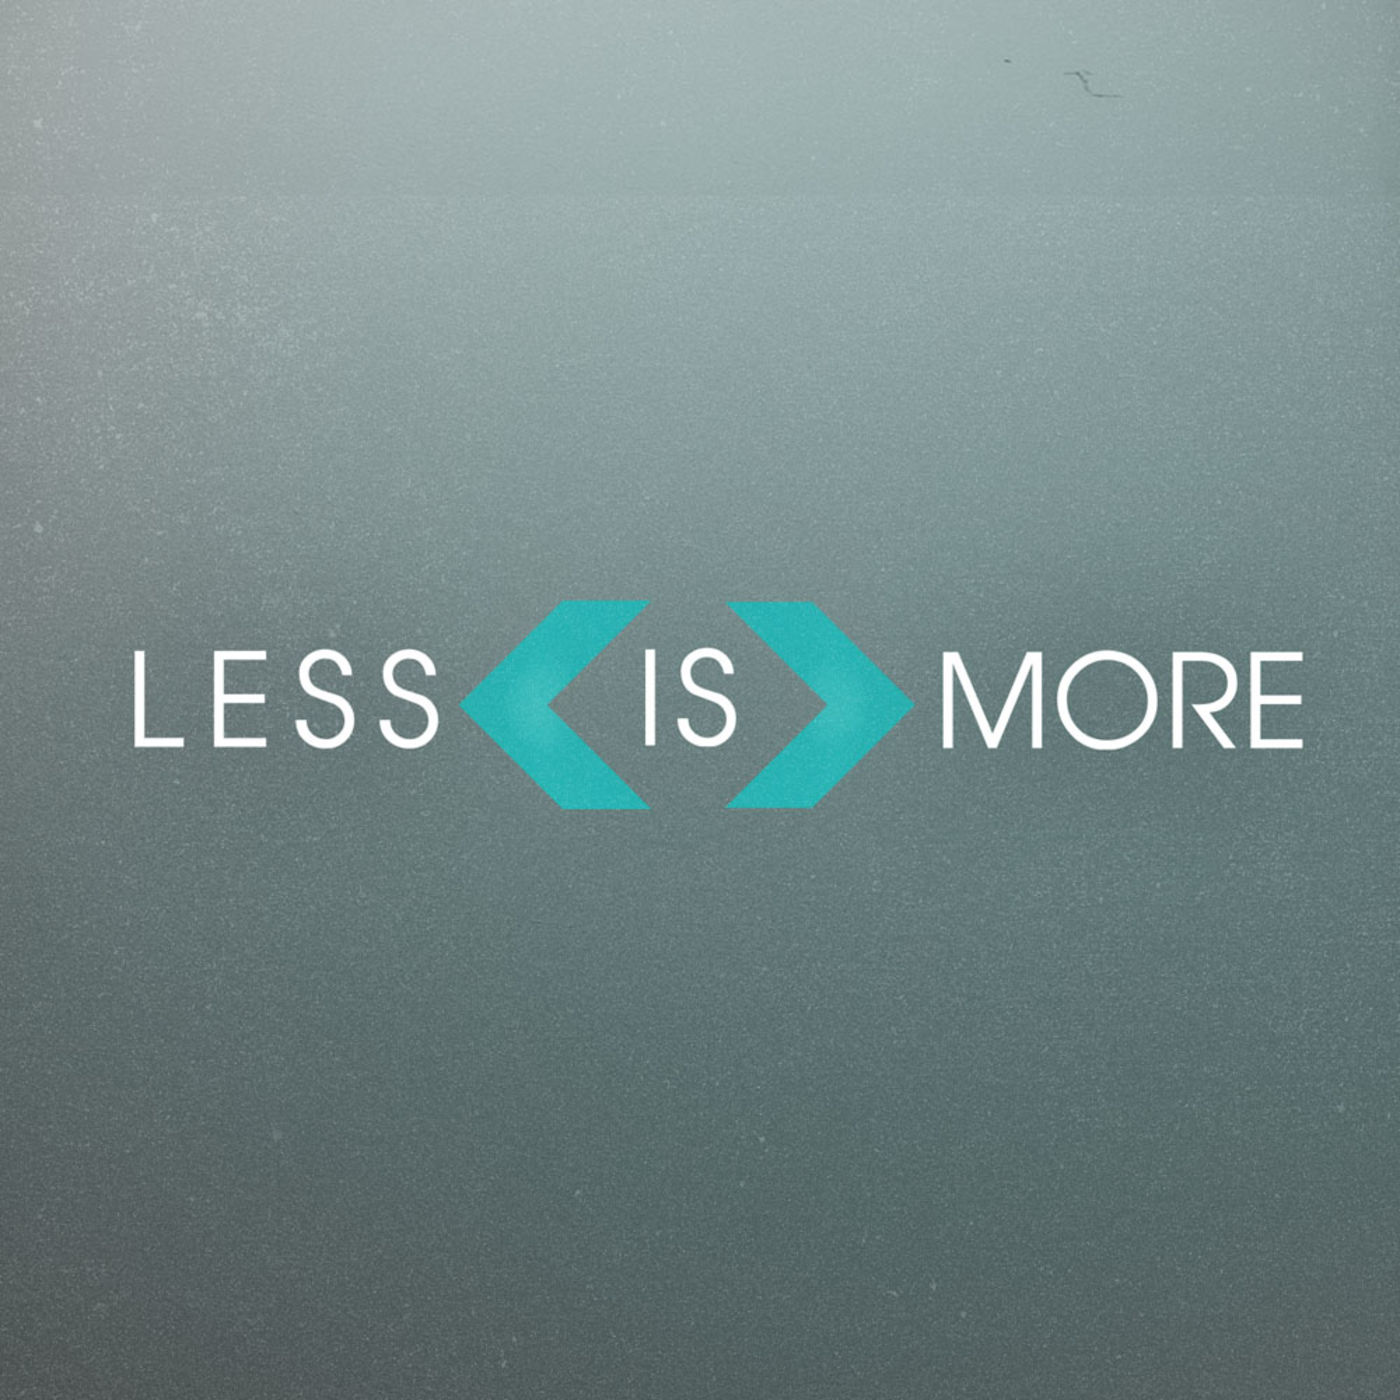 Less Safety | More Risk